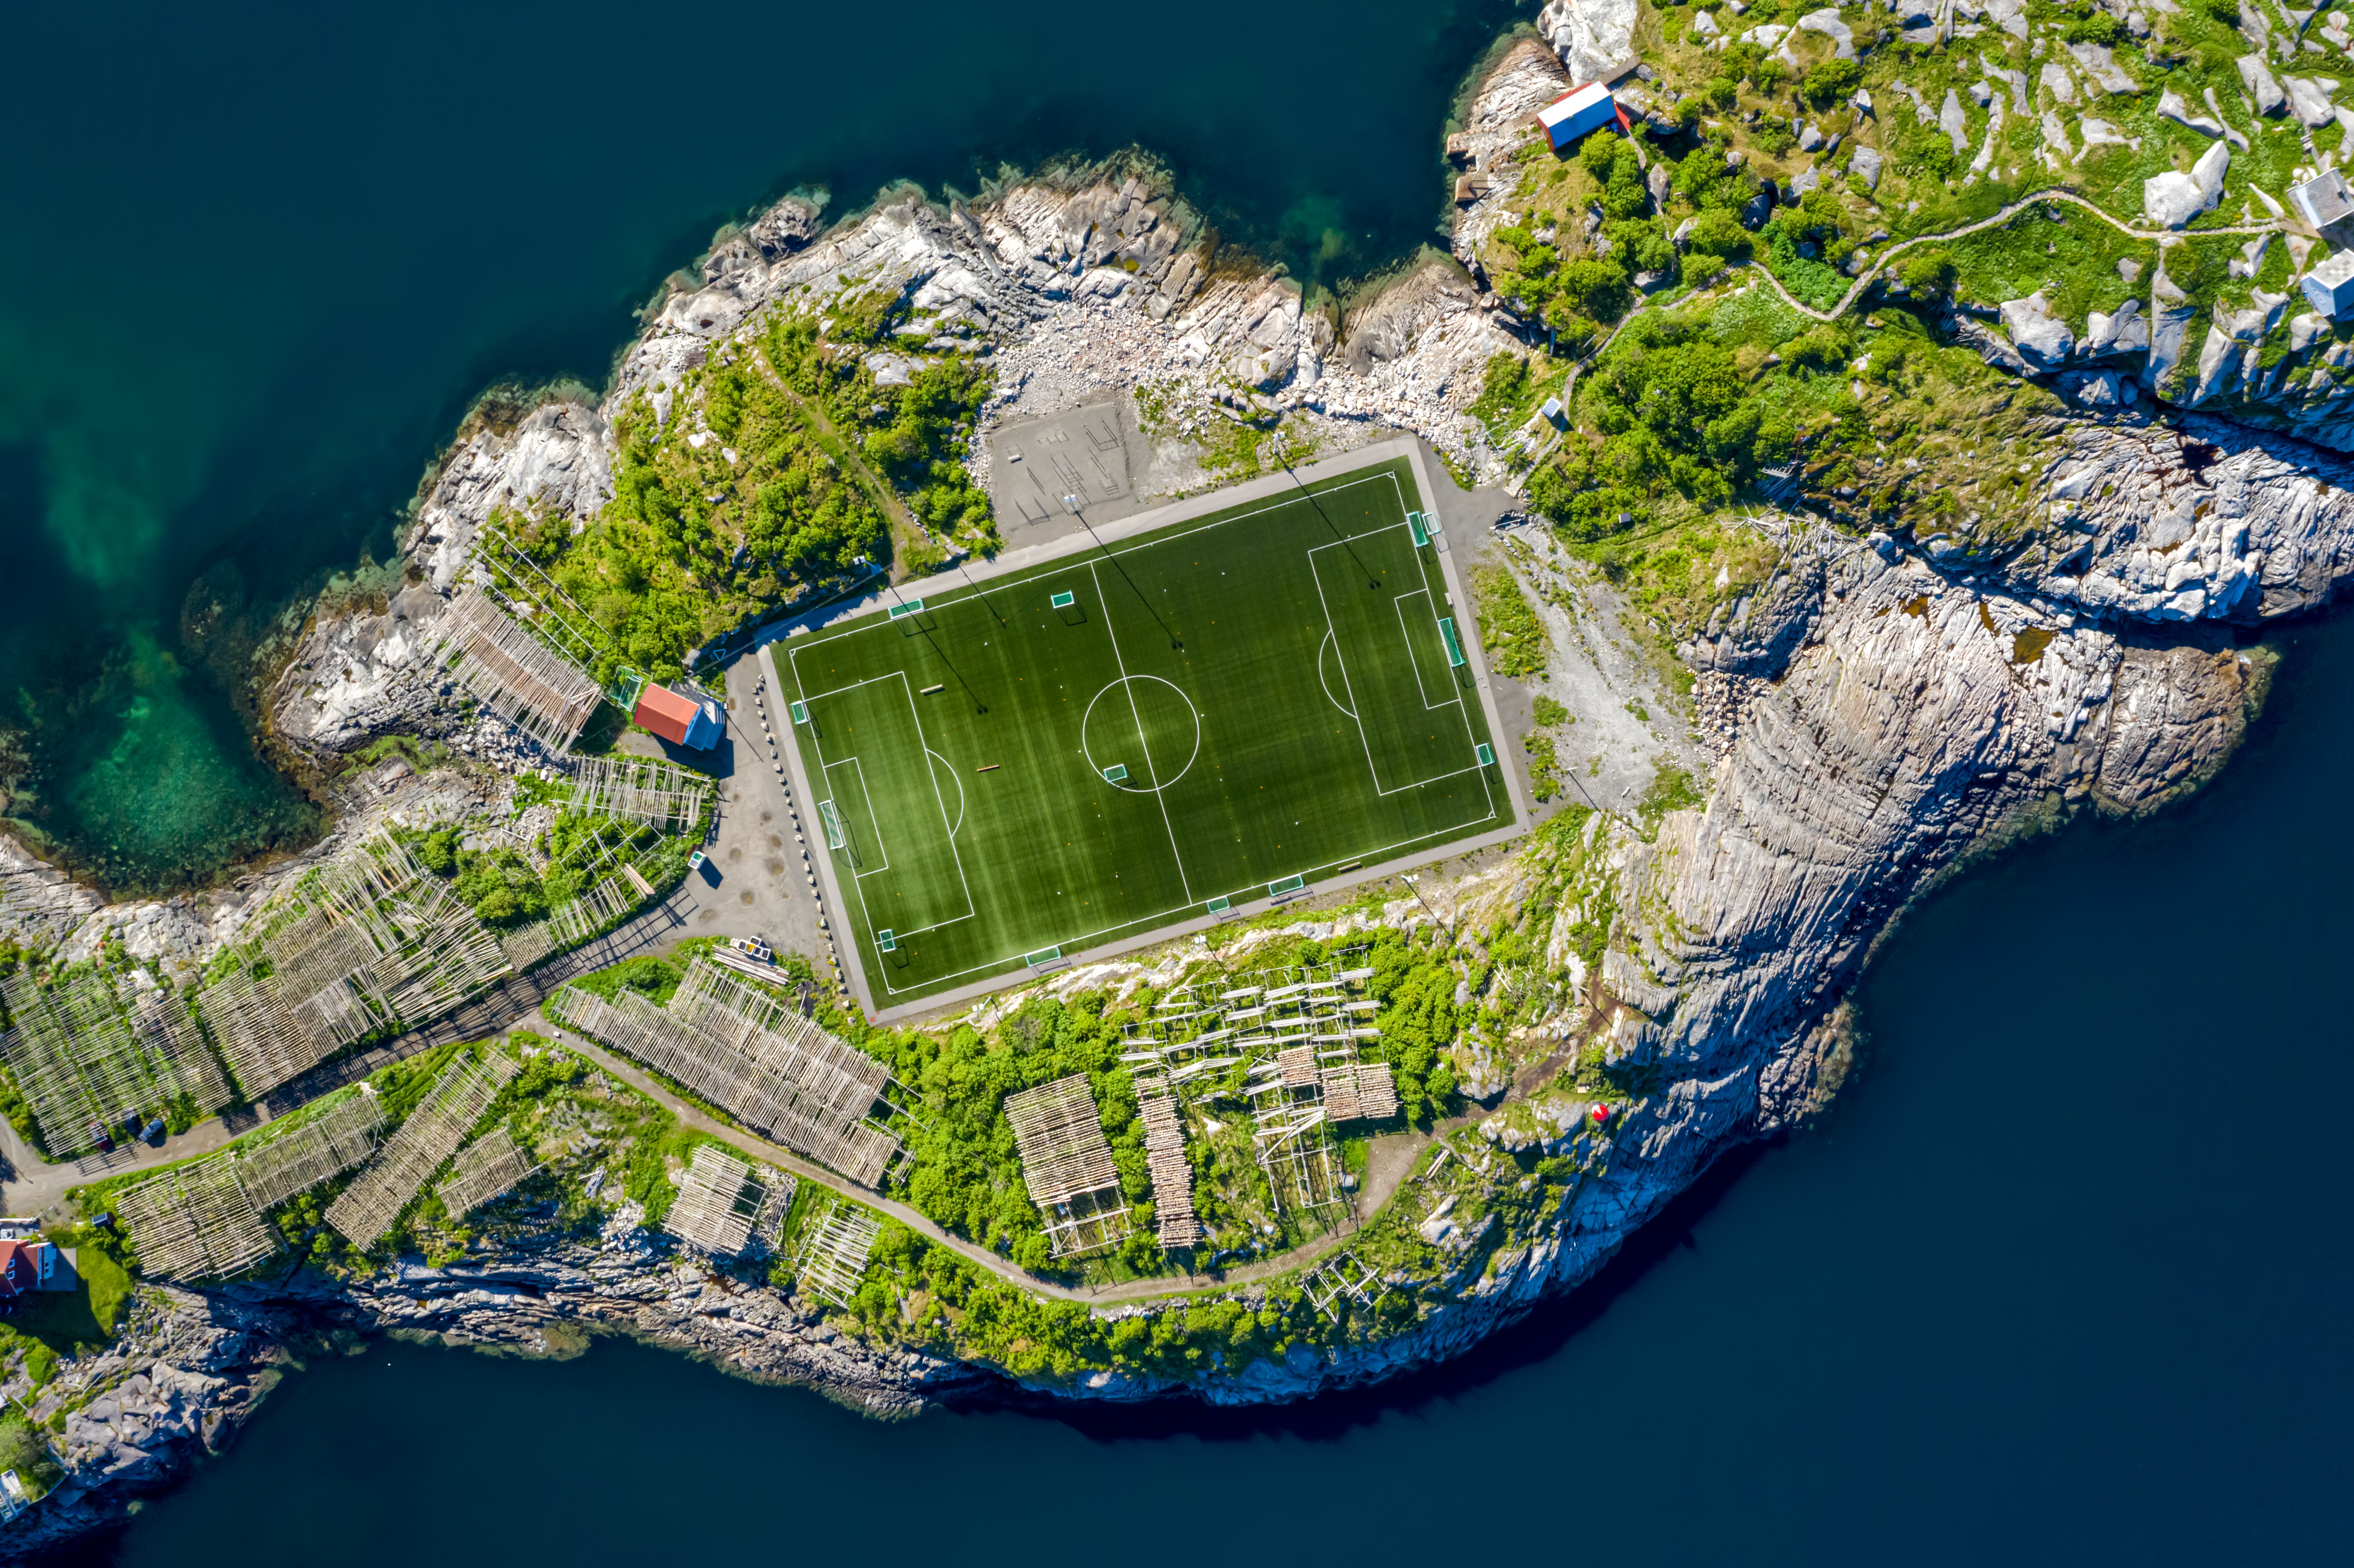 Football stadium in Henningsvaer